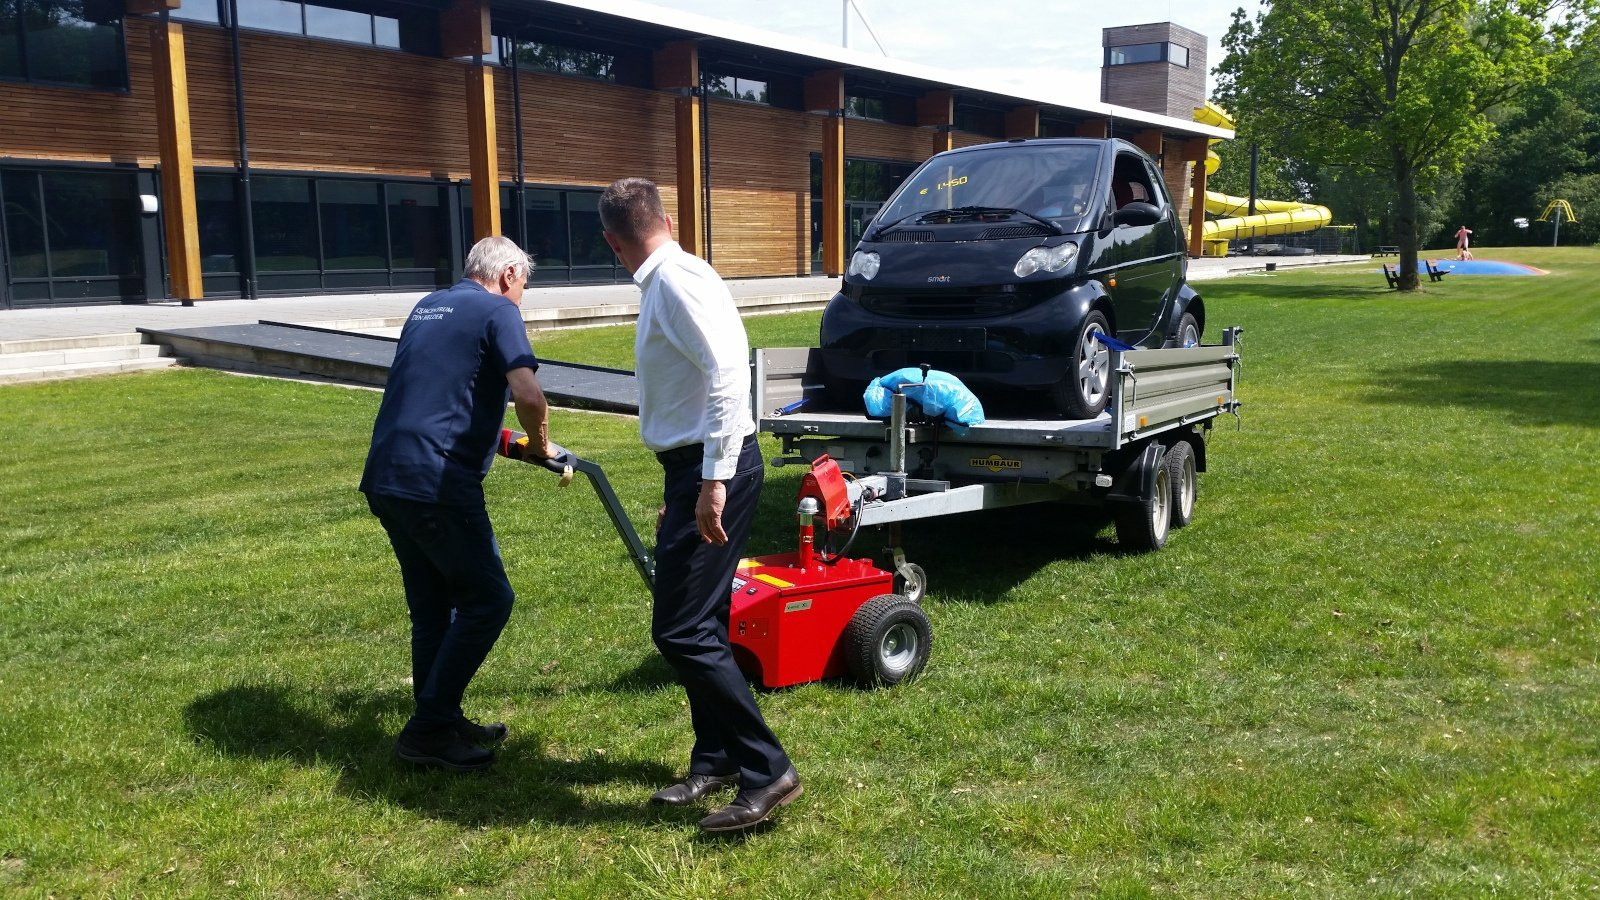 Xerowastee | V-Move XL moving trailer with a vehicle on it on a grass surface